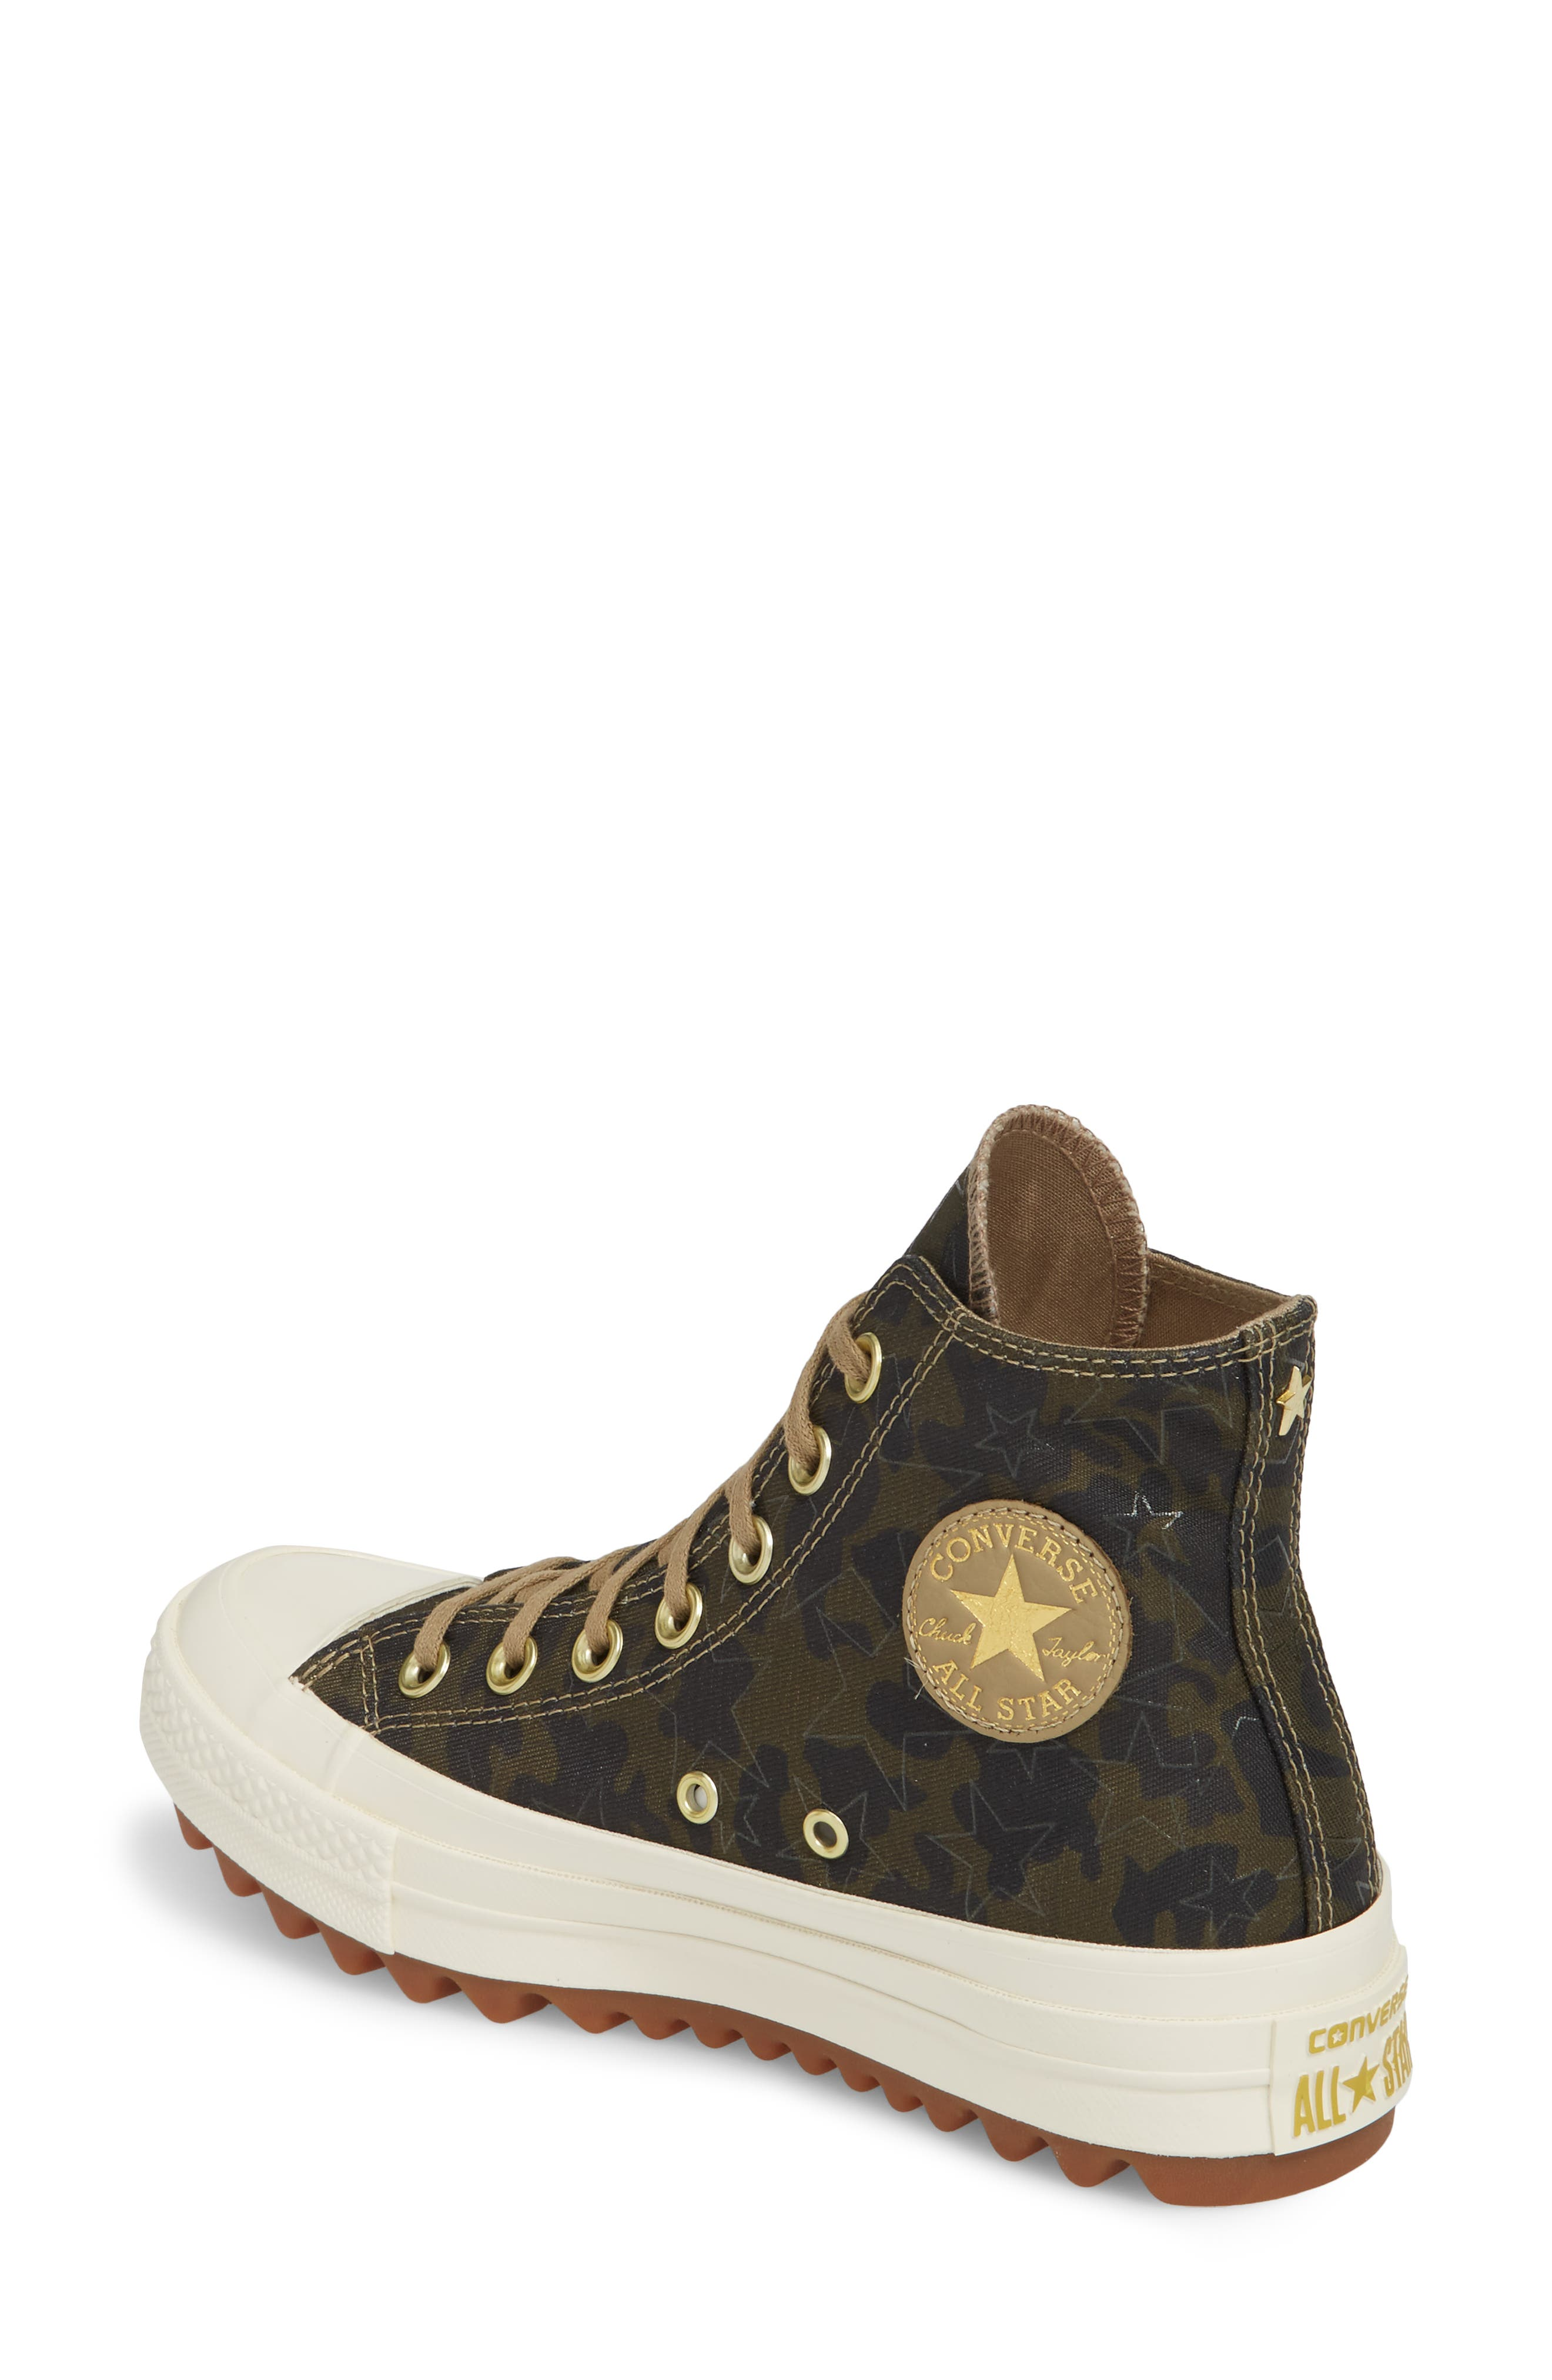 Chuck Taylor<sup>®</sup> All Star<sup>®</sup> Lift Ripple High Top Sneaker,                             Alternate thumbnail 2, color,                             Khaki